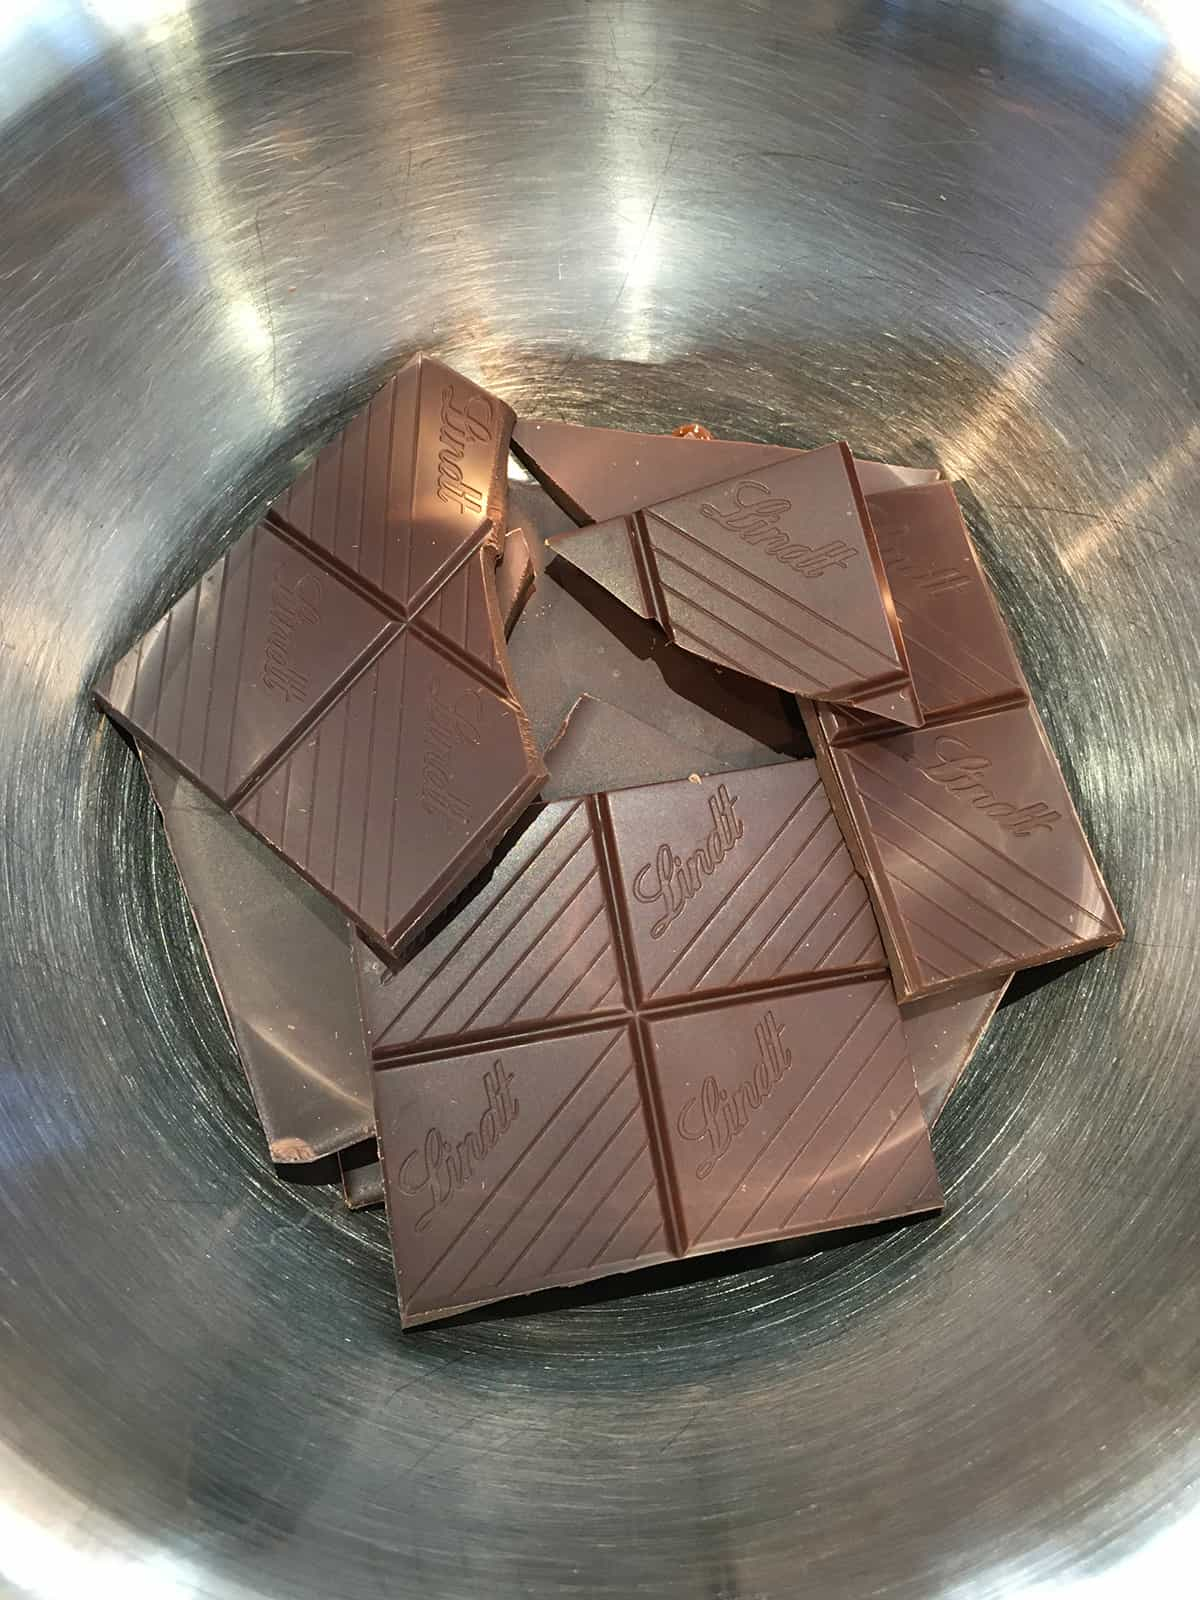 Pieces of dark chocolate bars in a stainless steel mixing bowl